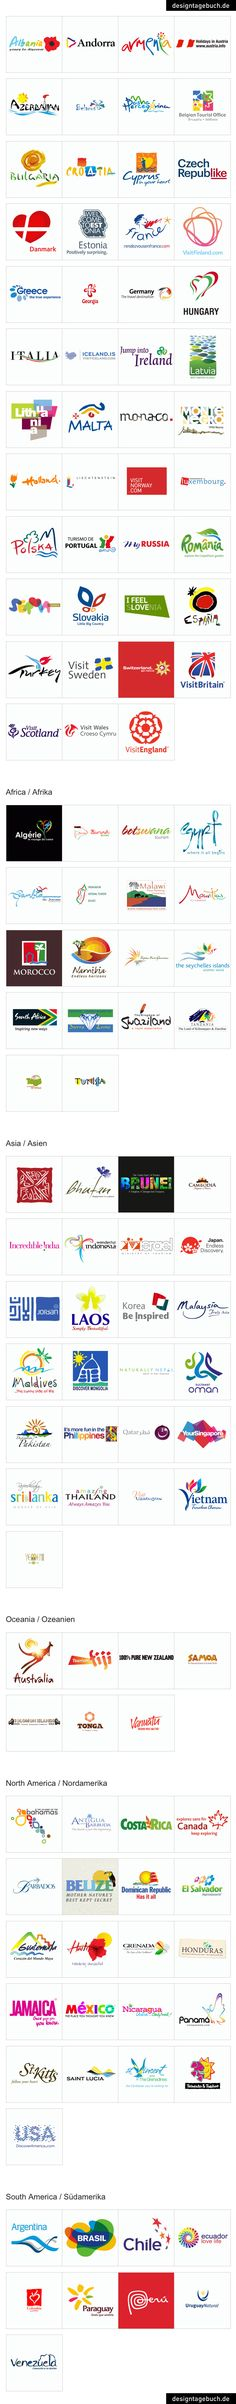 .: tourism-logos-national-branding